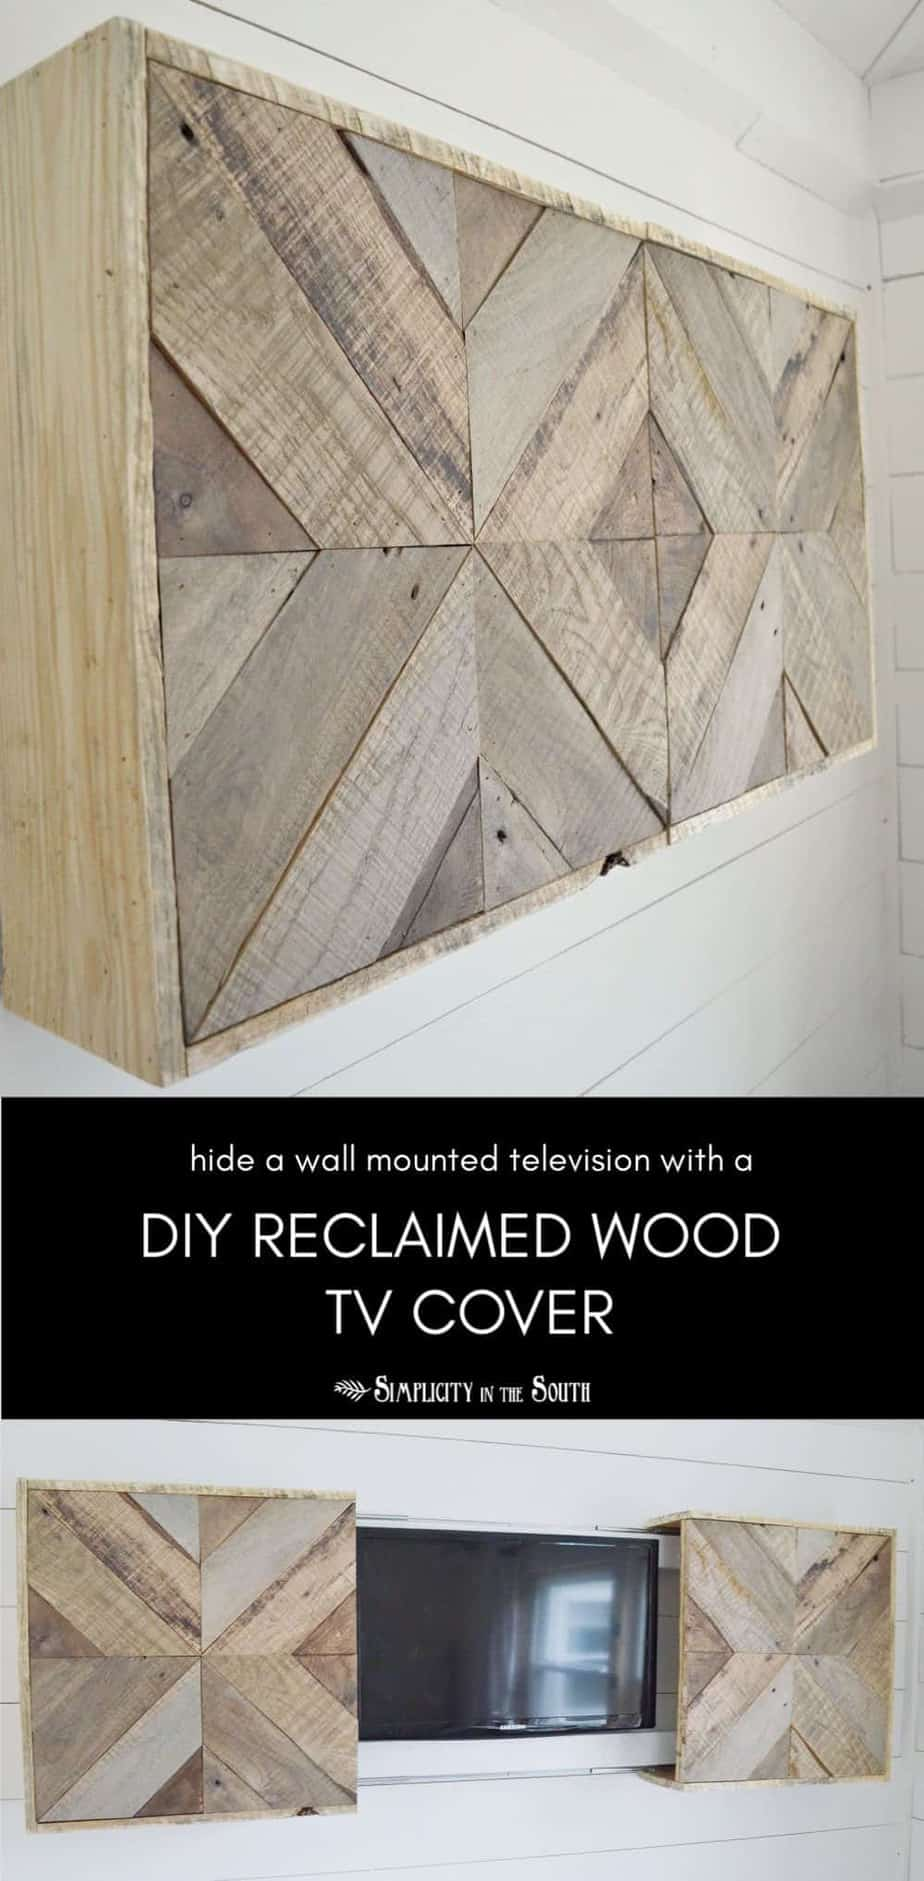 how to hide a wall mounted TV using a DIY reclaimed wood television sliding cover